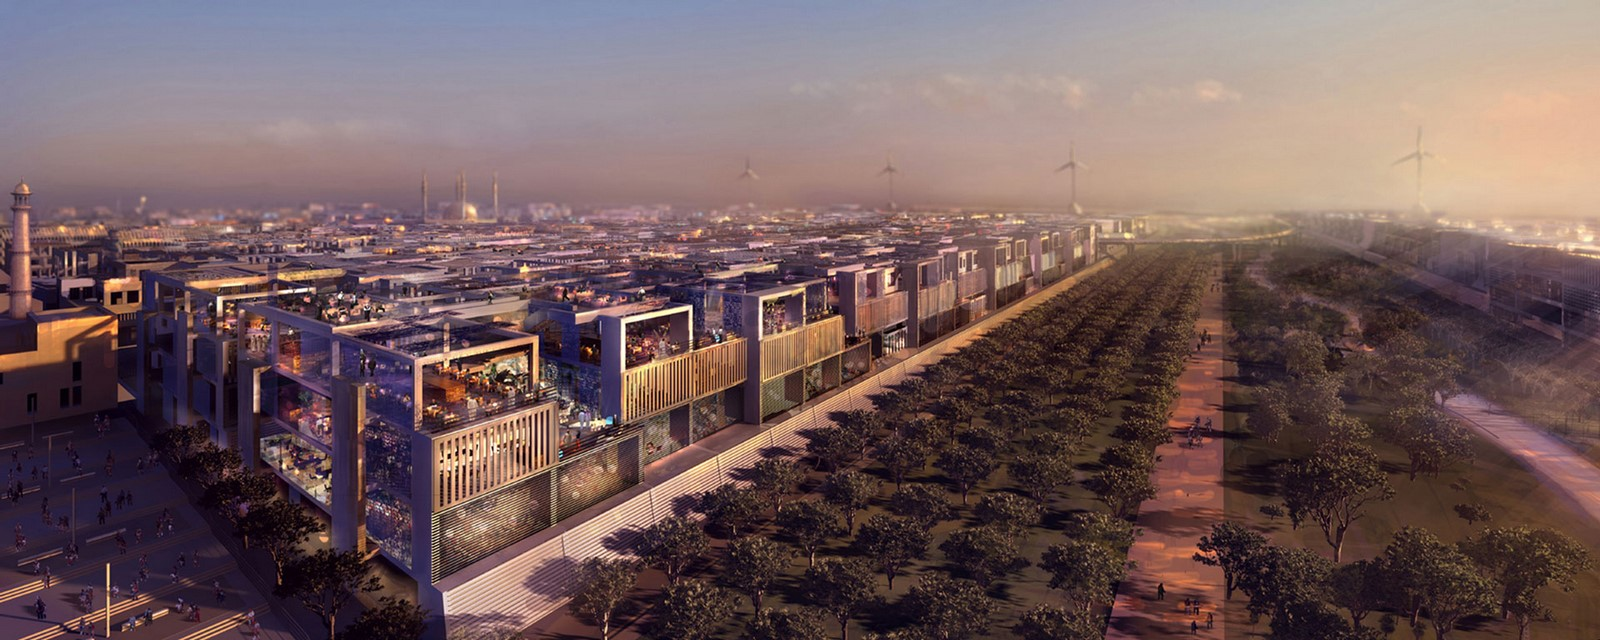 Masdar City: The first sustainable city - Sheet9